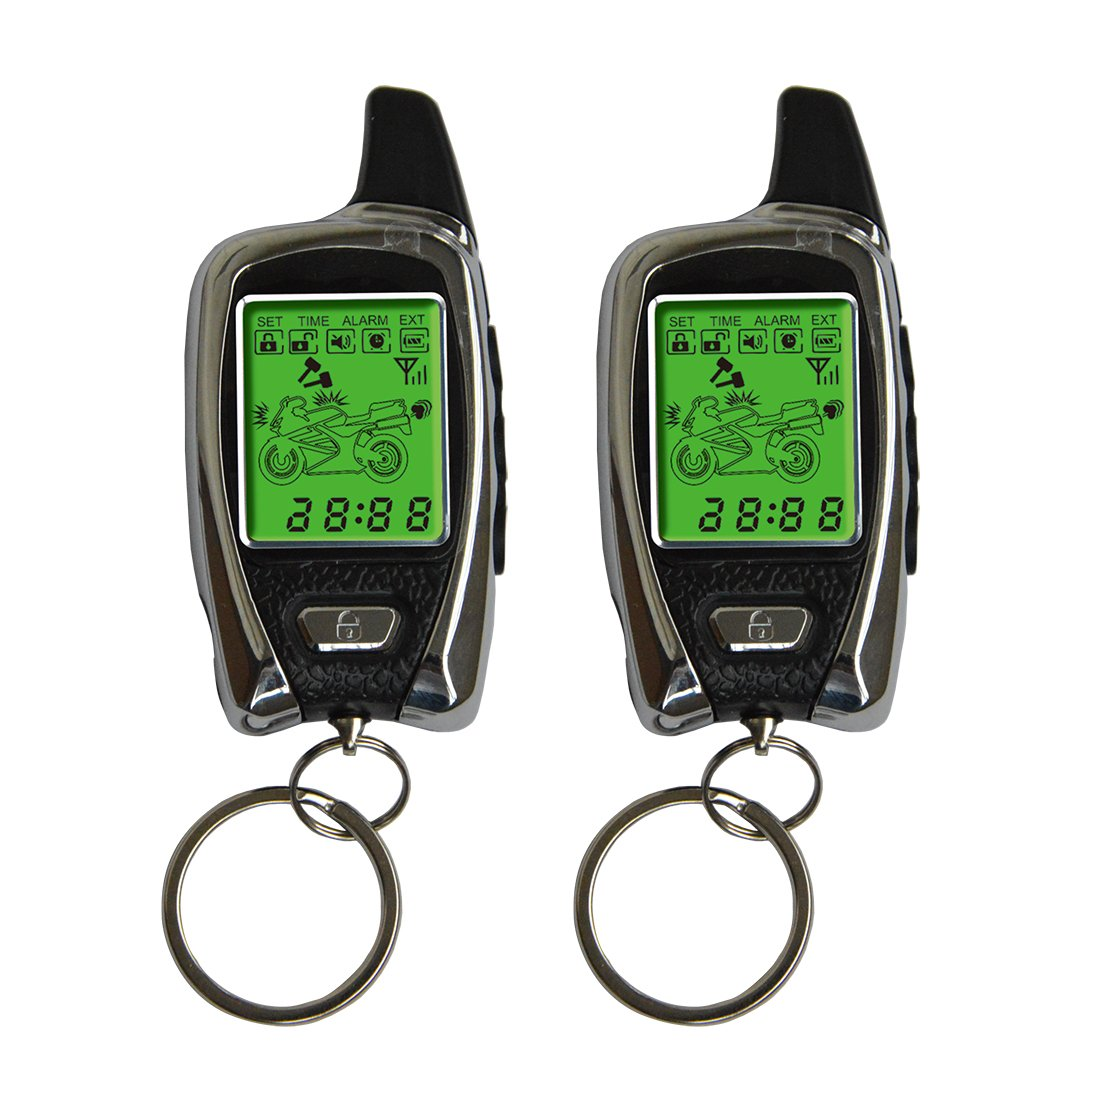 2 Way LCD Motorcycle Alarm System with Remote Engine Start 100/% Original OEM from SPY Factory